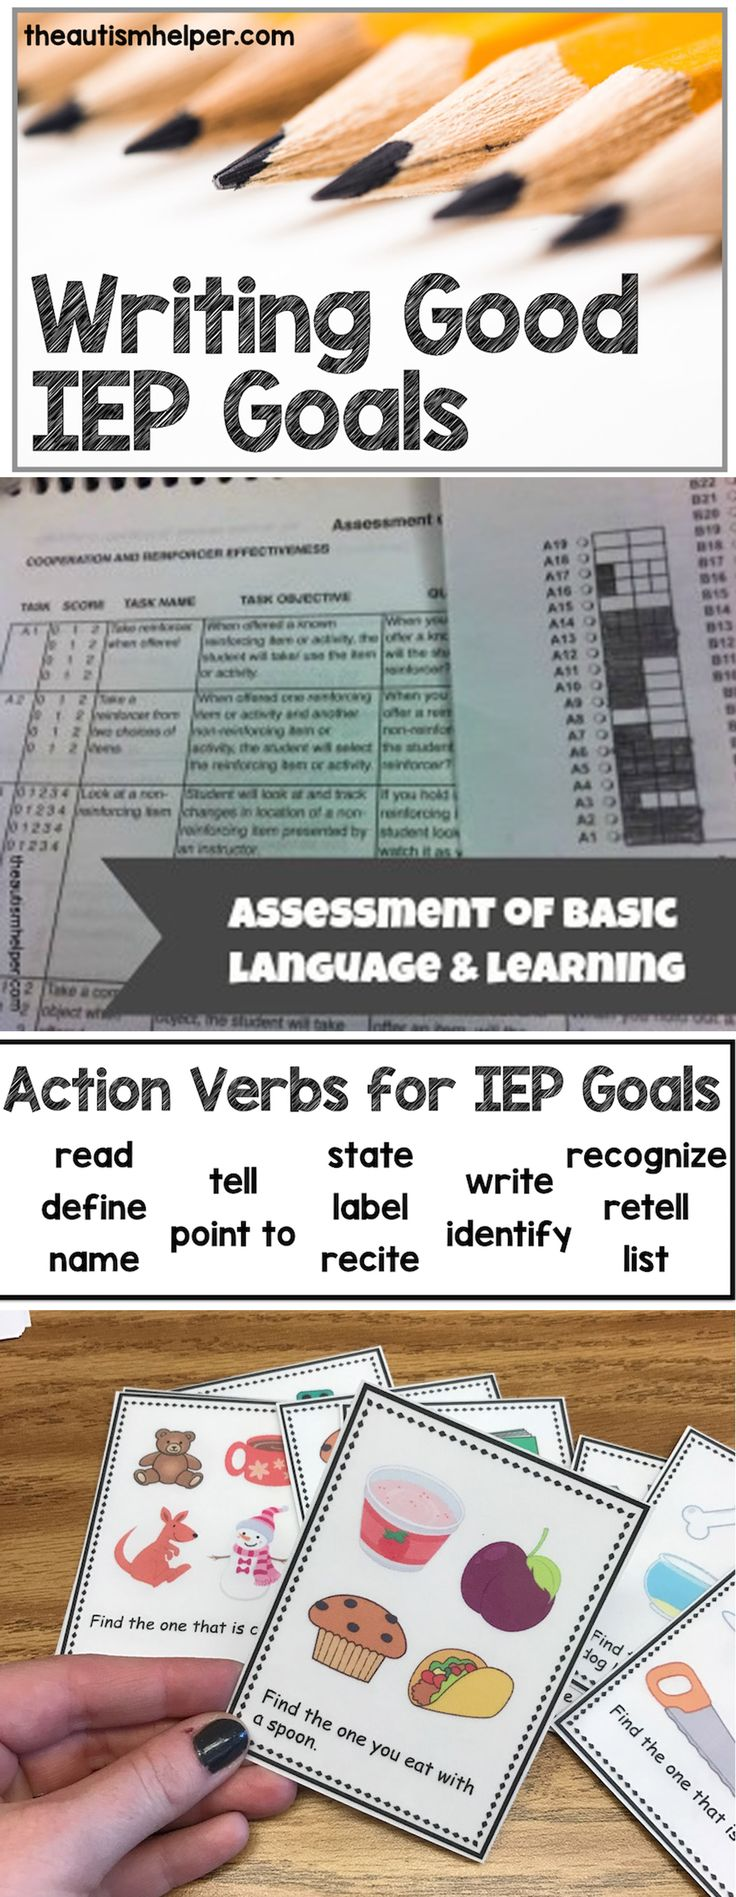 Get back to the basics of good ole' IEP goals to enhance your teaching today!! From theautismhelper.com #theautismhelper